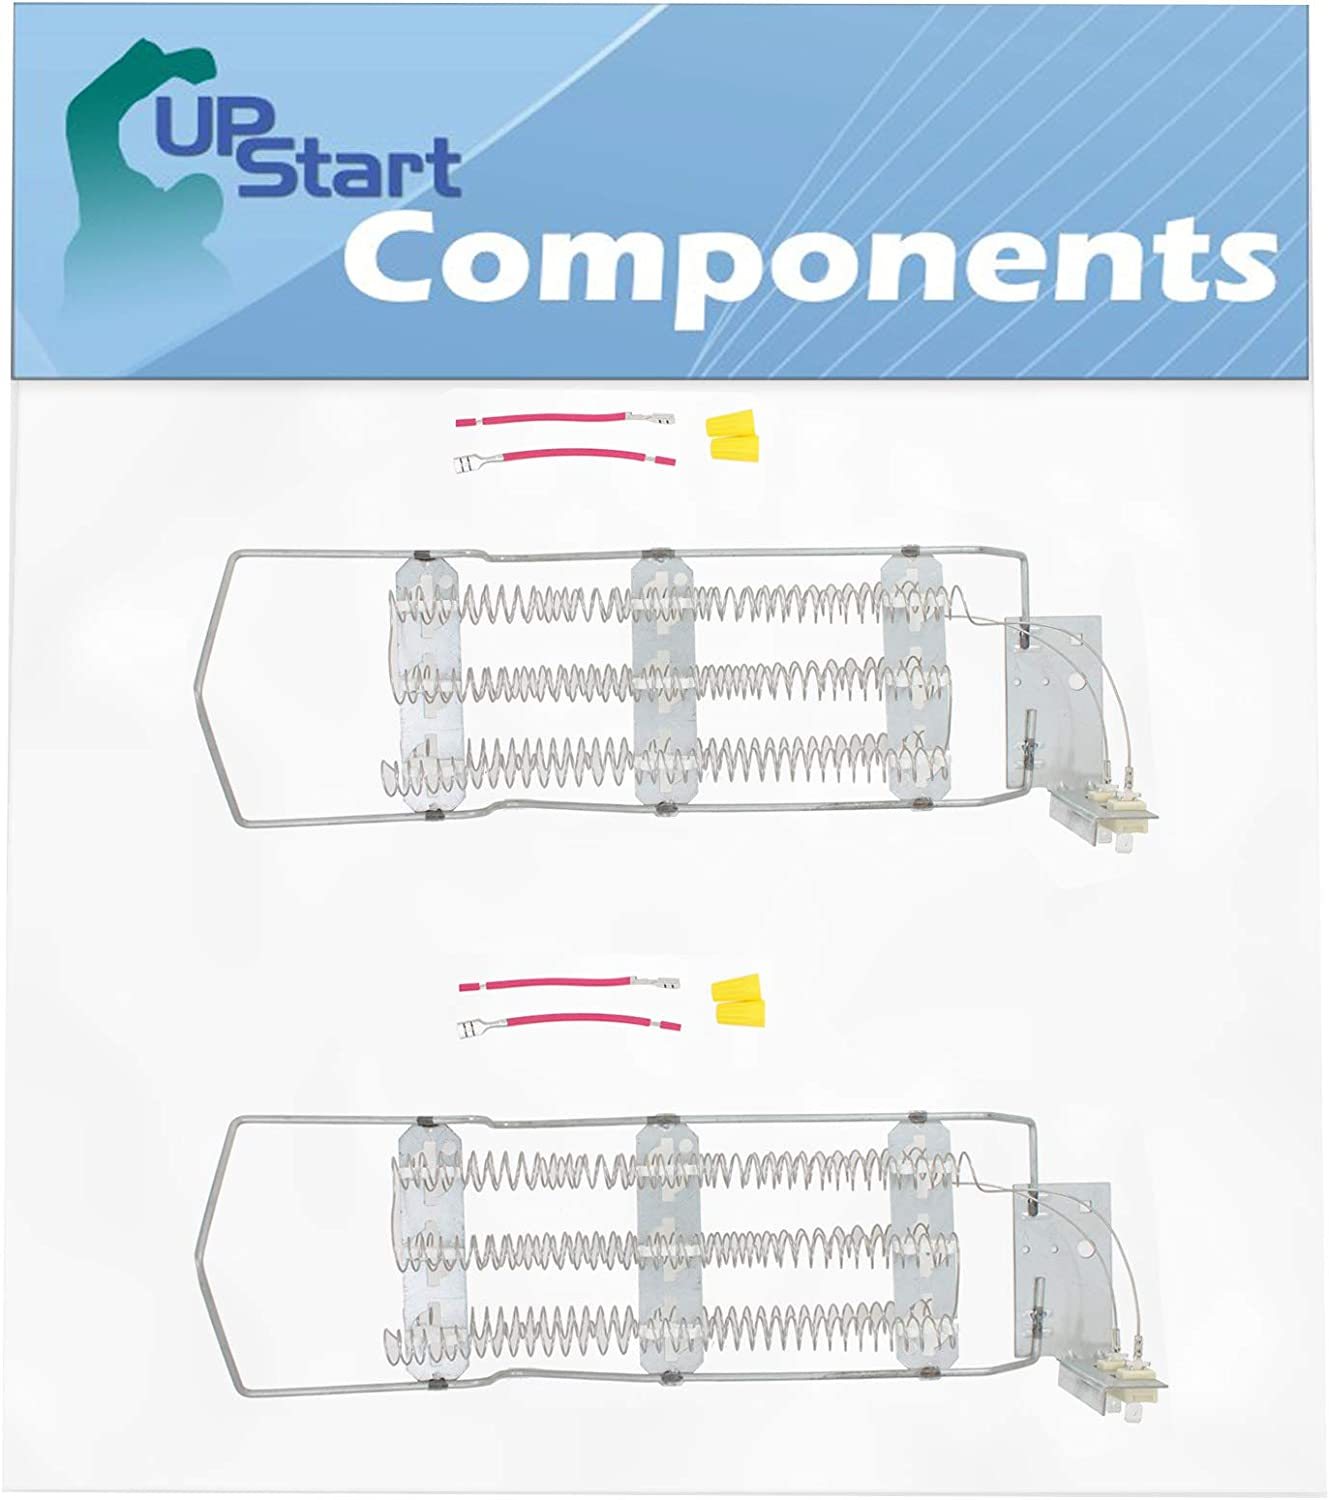 2-Pack 4391960 Heating Element Replacement for Kenmore/Sears 110.86582820 - Compatible with WP4391960 696579 Dryer Element